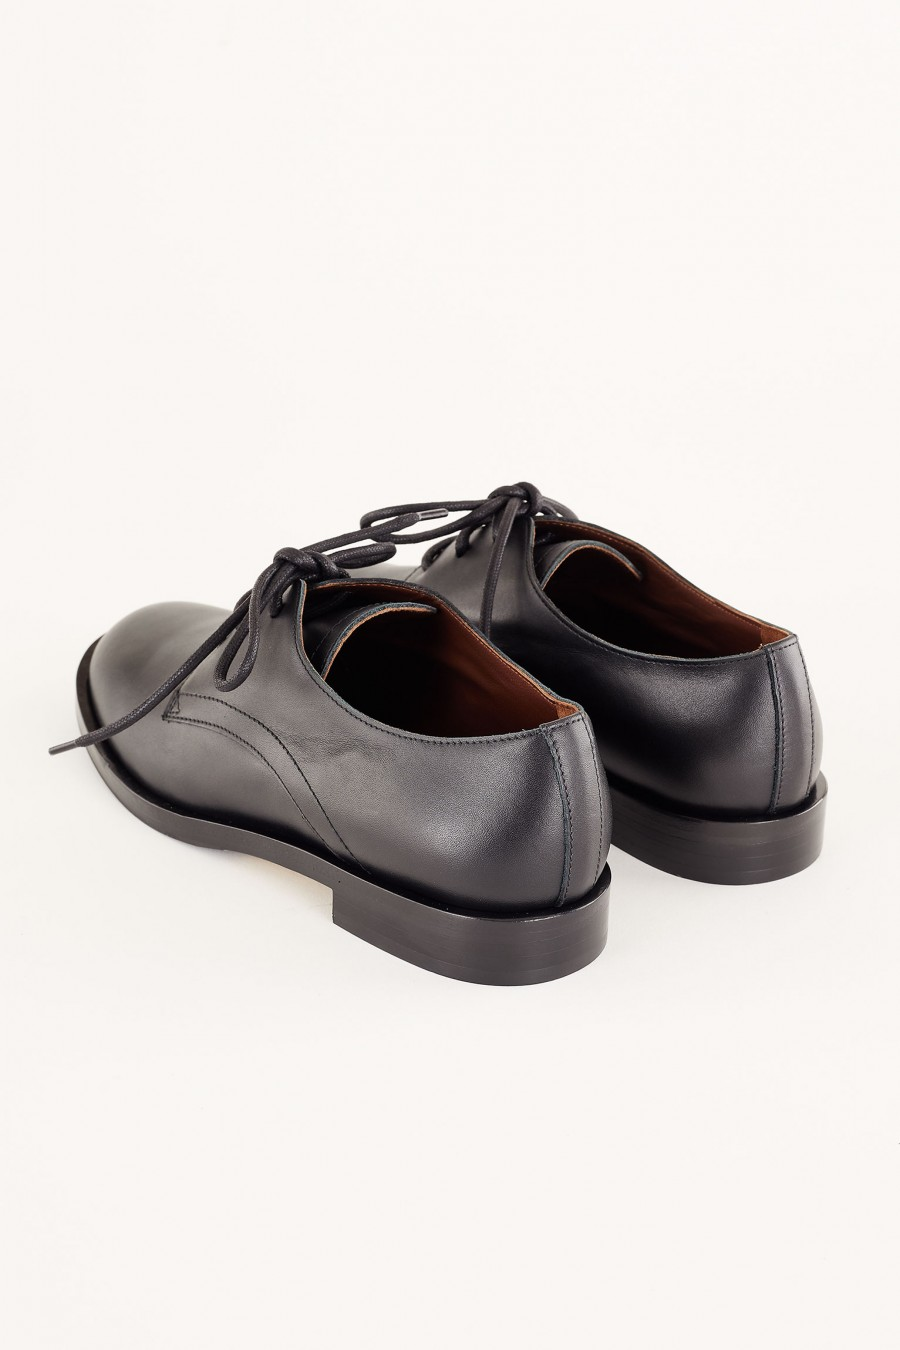 made in italy black nappa leather derby shoes